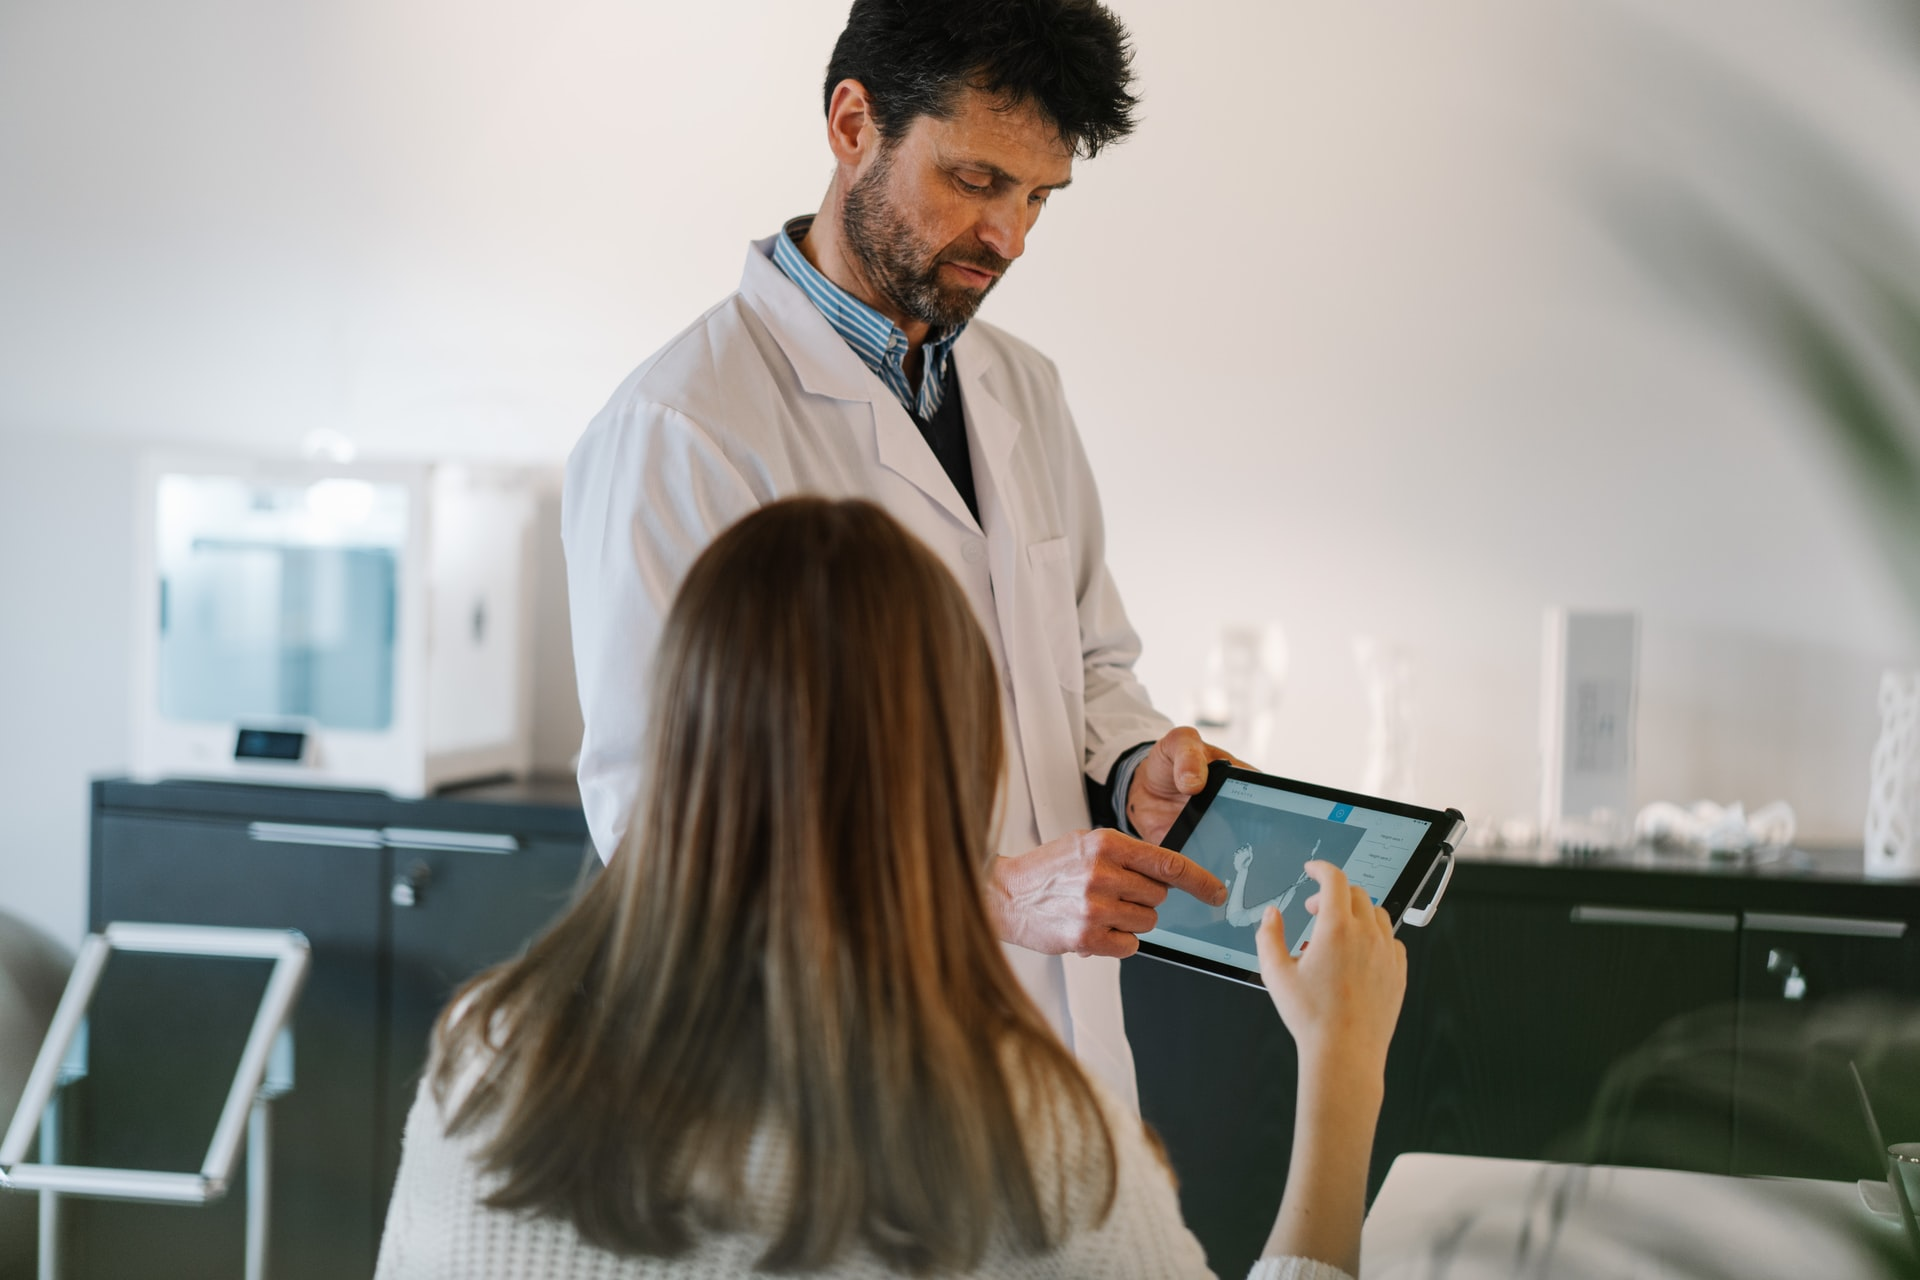 Creating a Positive Relationship Between Patient and Physician